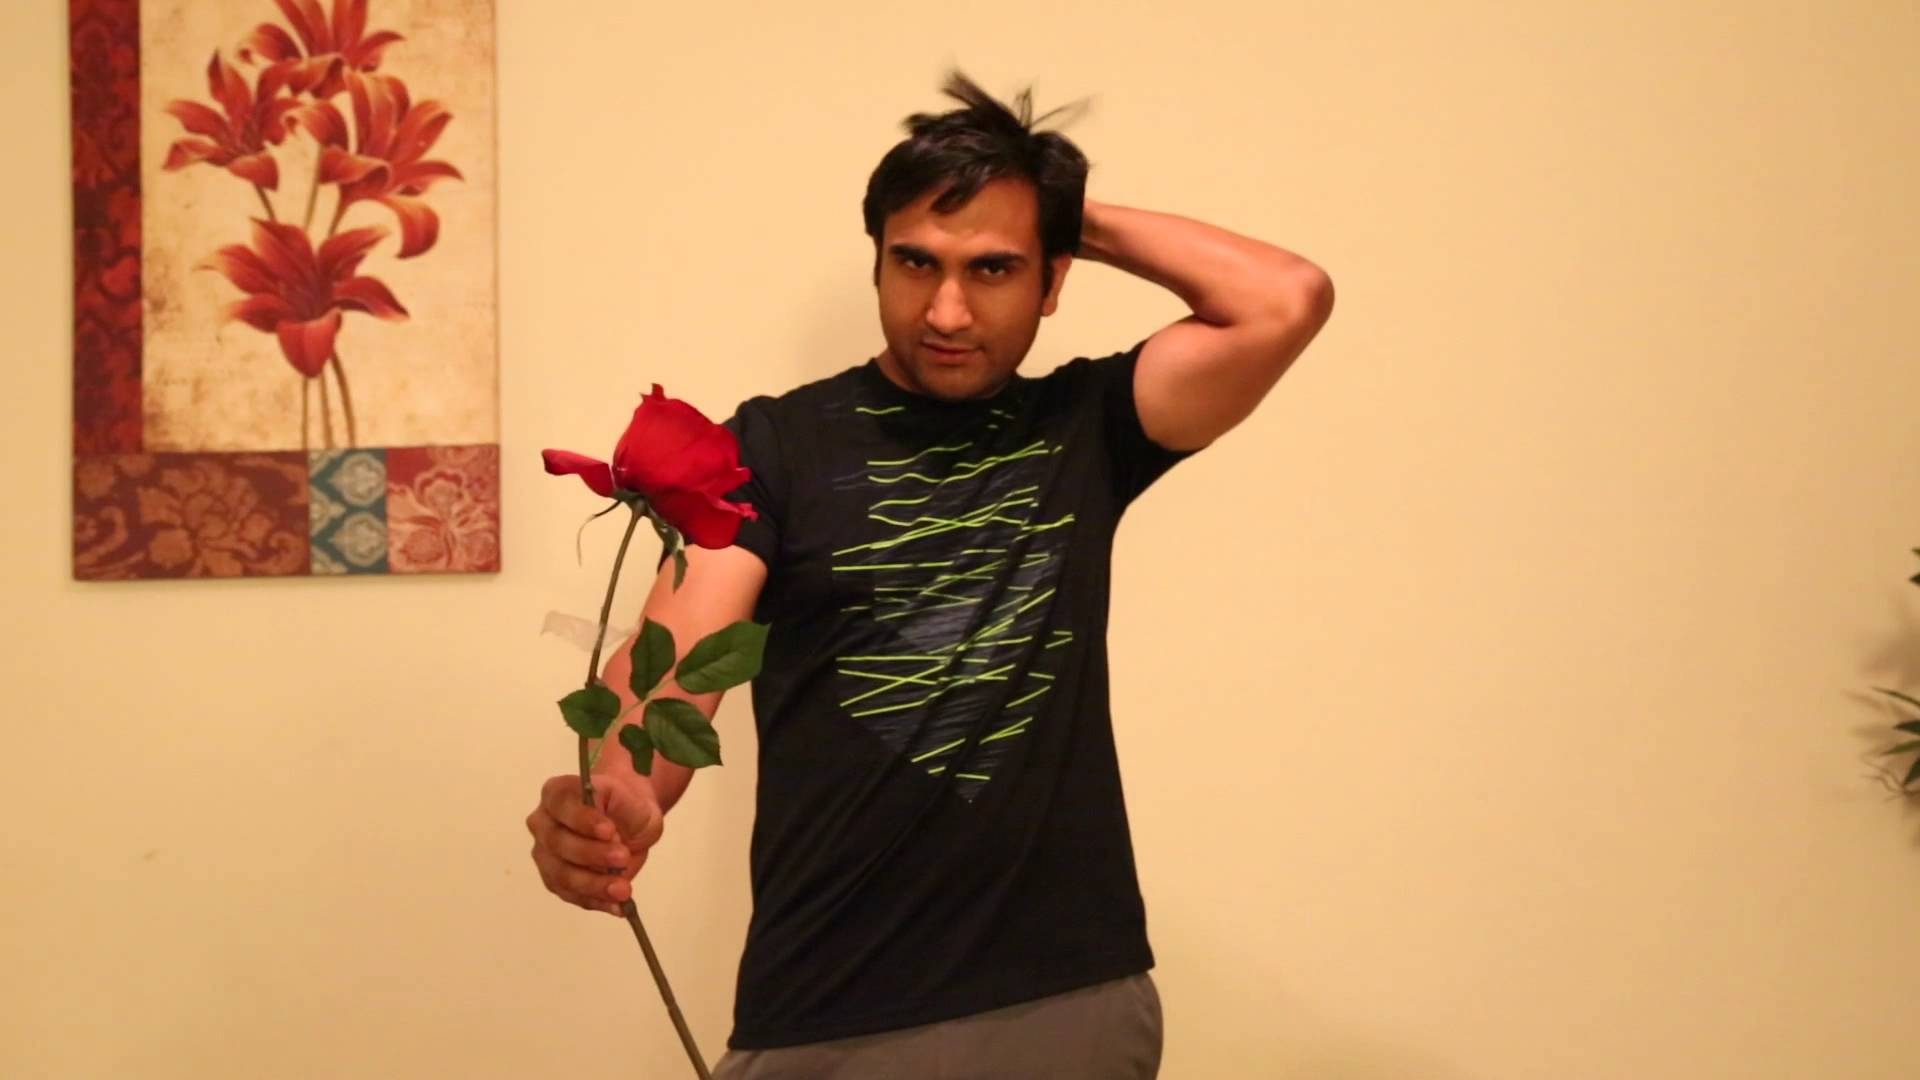 Haryanvi guy gets ready for first date By Lalit Shokeen